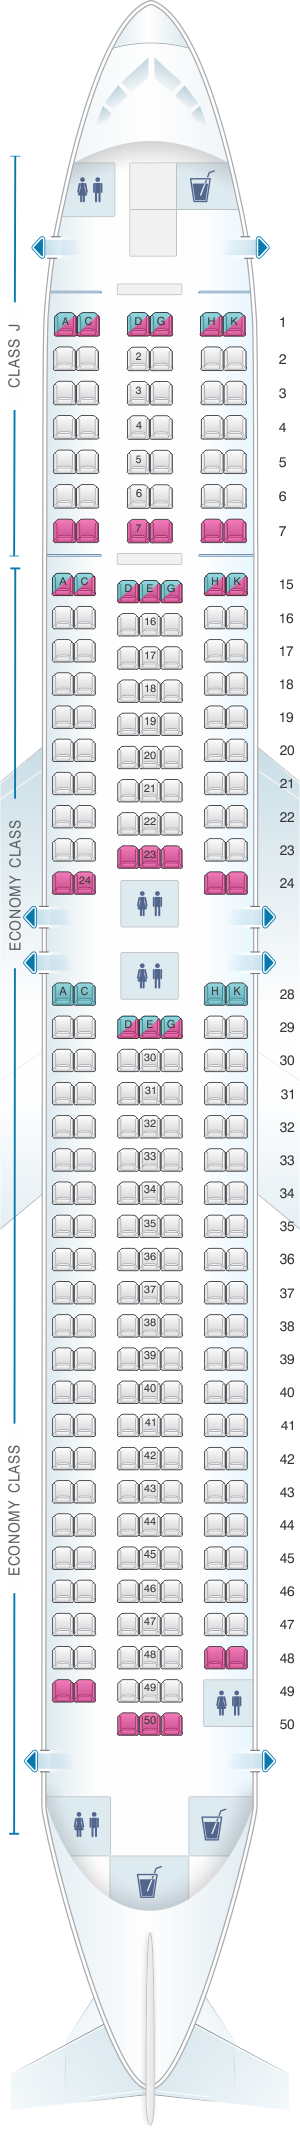 Seat map for Japan Airlines (JAL) Boeing B767 300 A23/A26